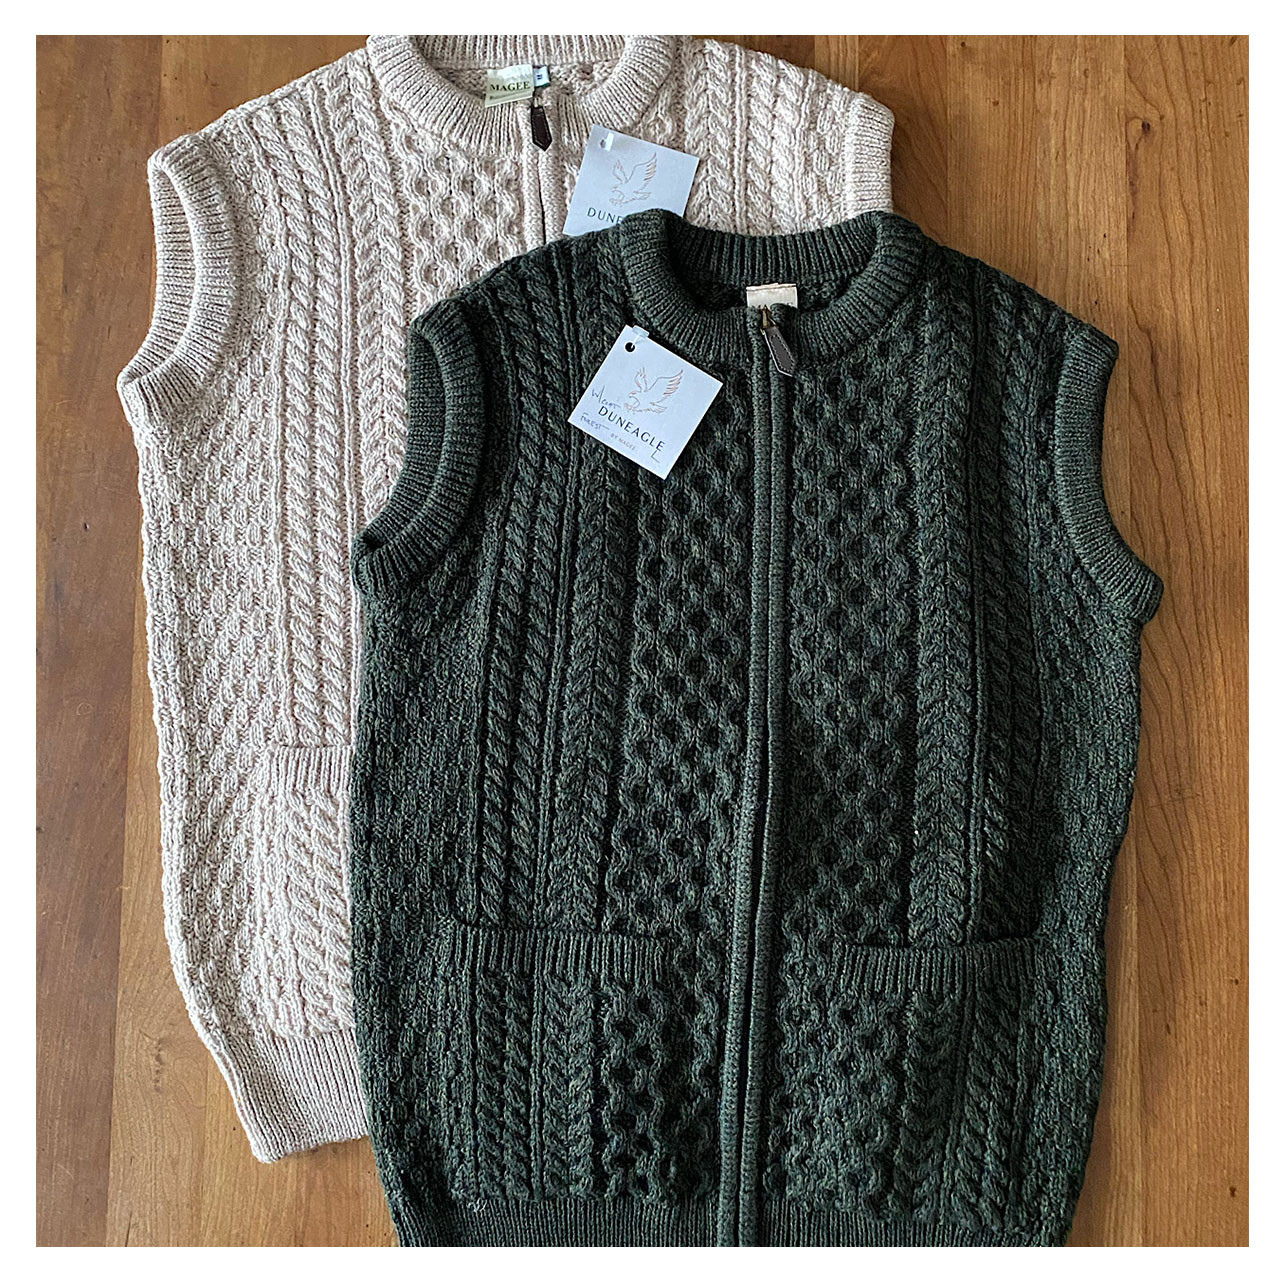 Natural and Forest Green Wool Irish Sweater Vest for Men or Women